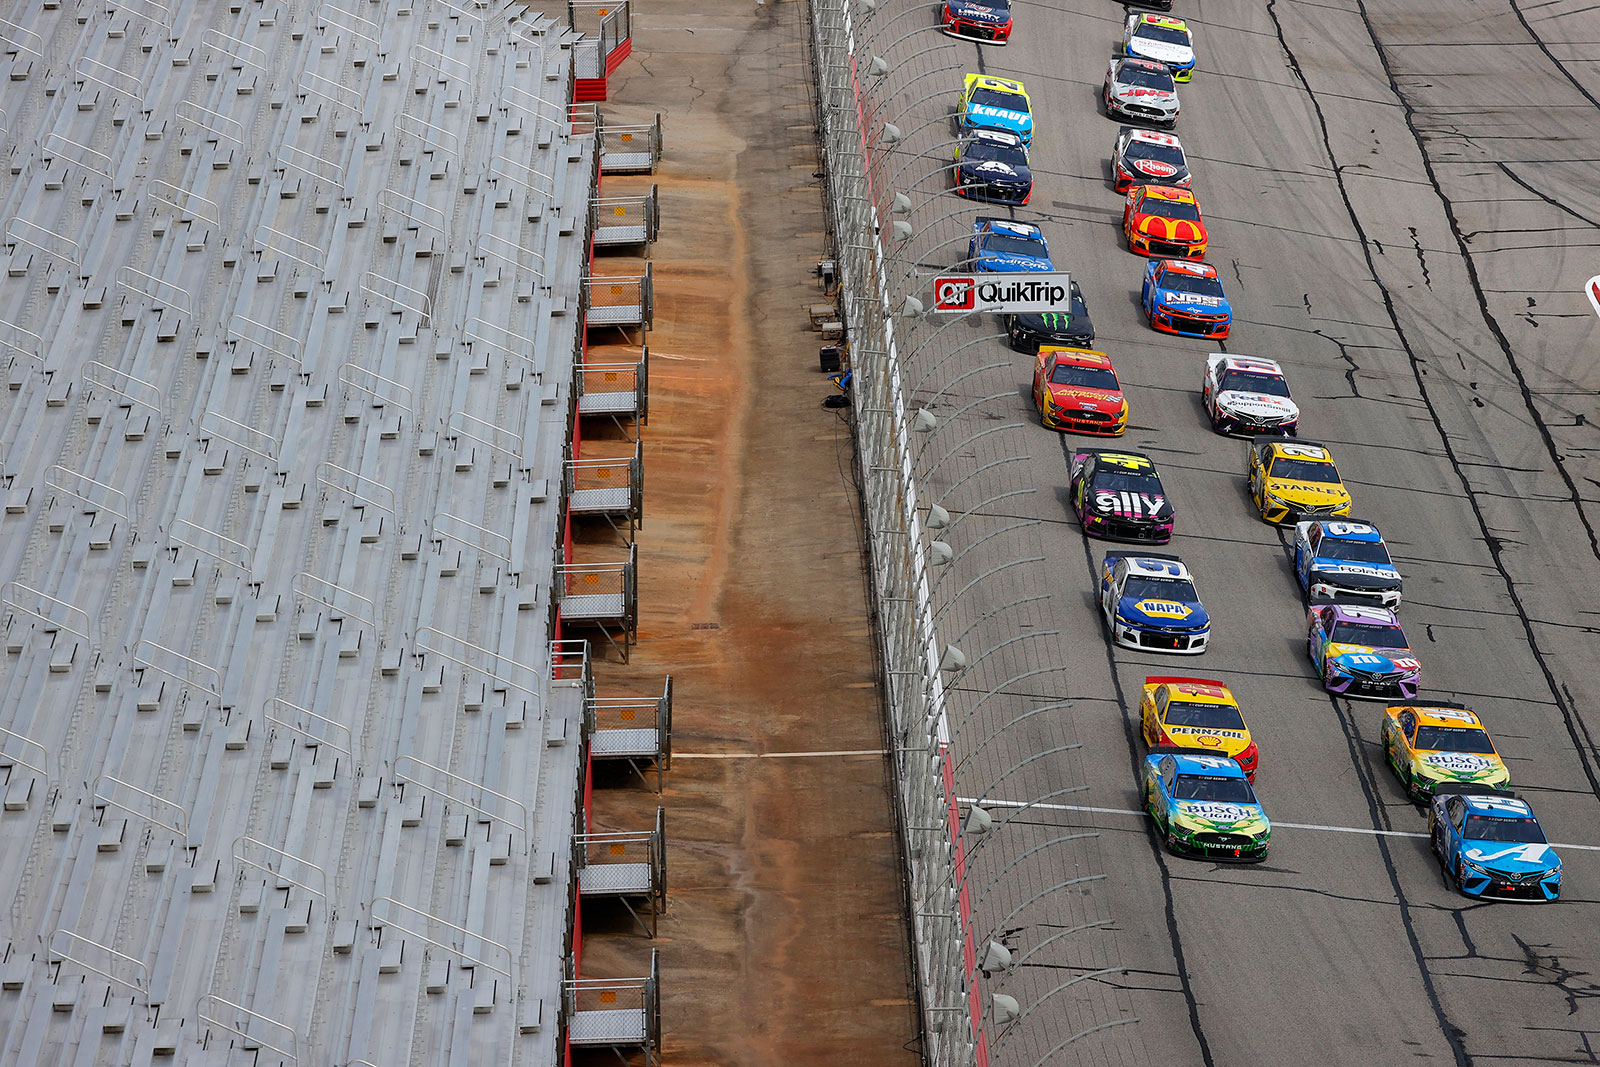 Drivers race during the NASCAR Cup Series Folds of Honor QuikTrip 500 at Atlanta Motor Speedway on June 7. NASCAR has been conducting races without fans since May 17.